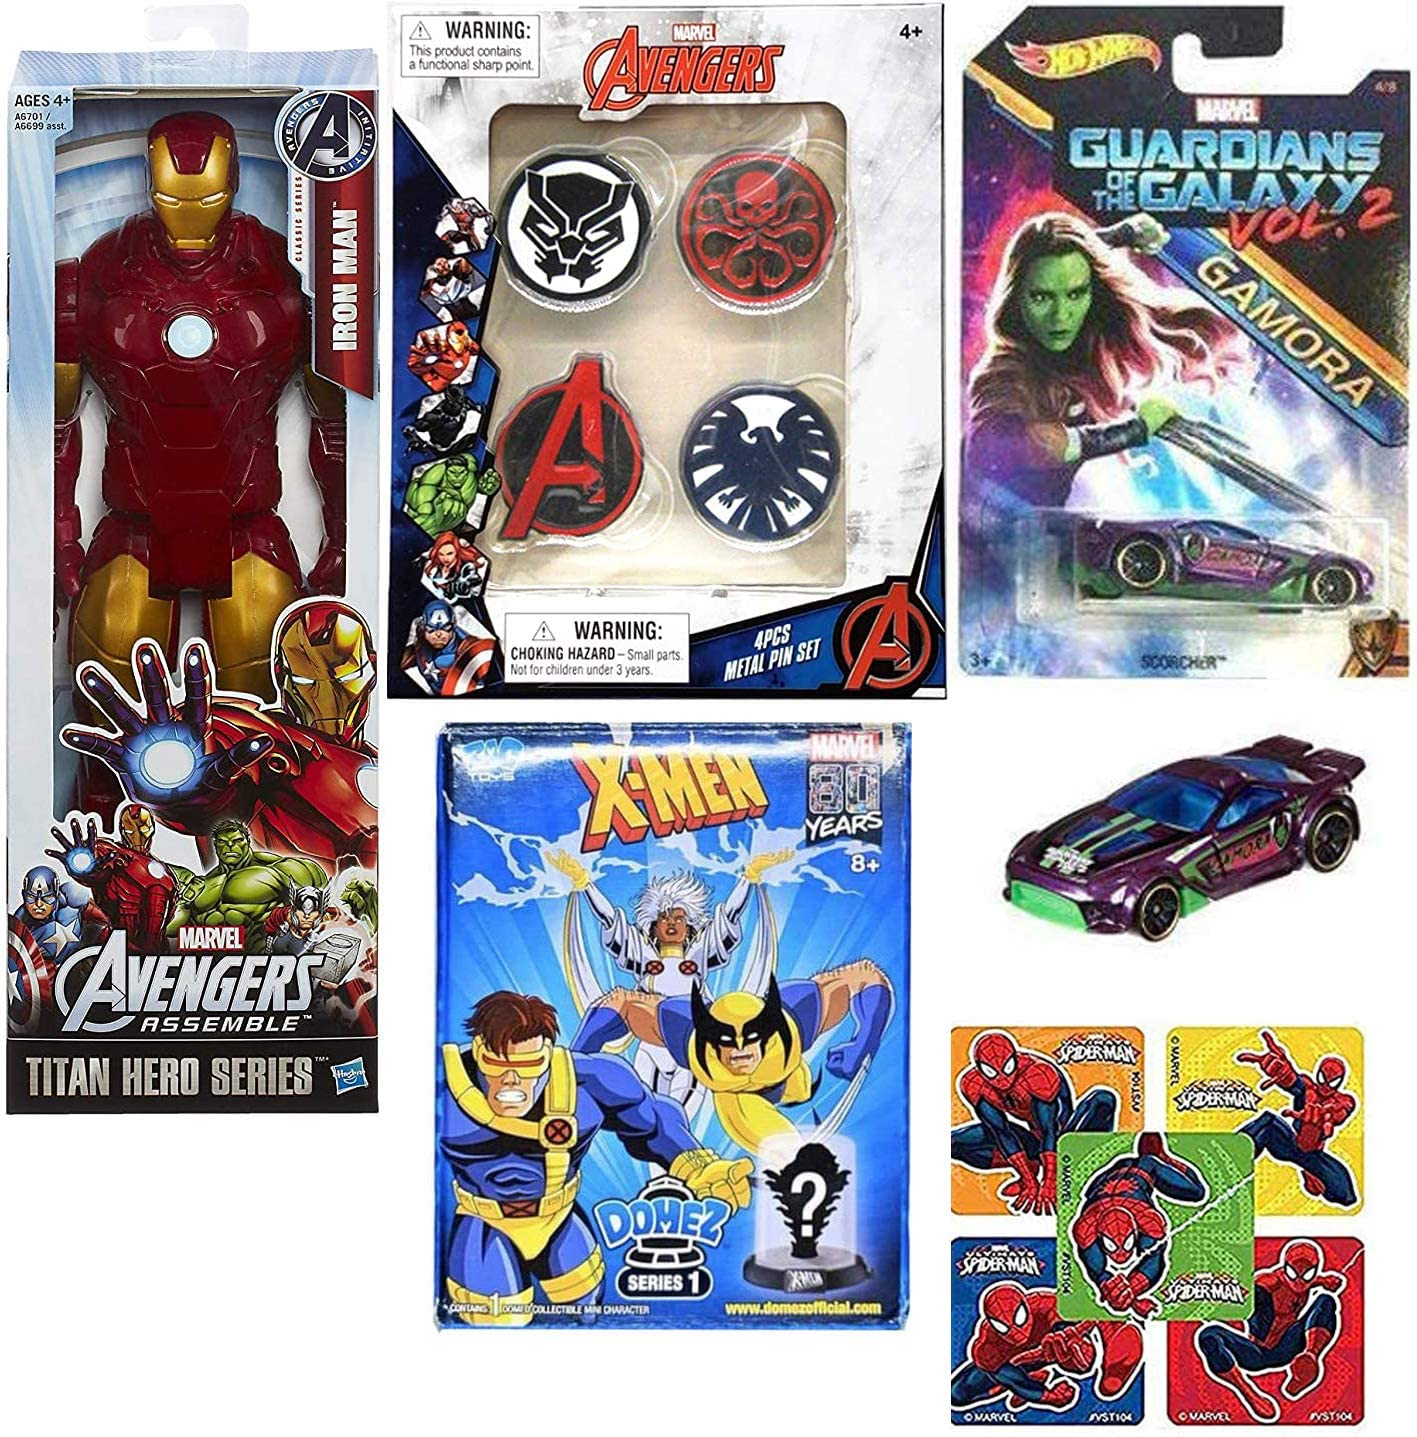 Scorcher Super Pack Marvel Heroes Gamora Guardians Galaxy Bundled with Heroes X-Men Blind Box Domez + Iron Man Titan Figure + Pins Hydra / Agents / & Stickers 4 Items